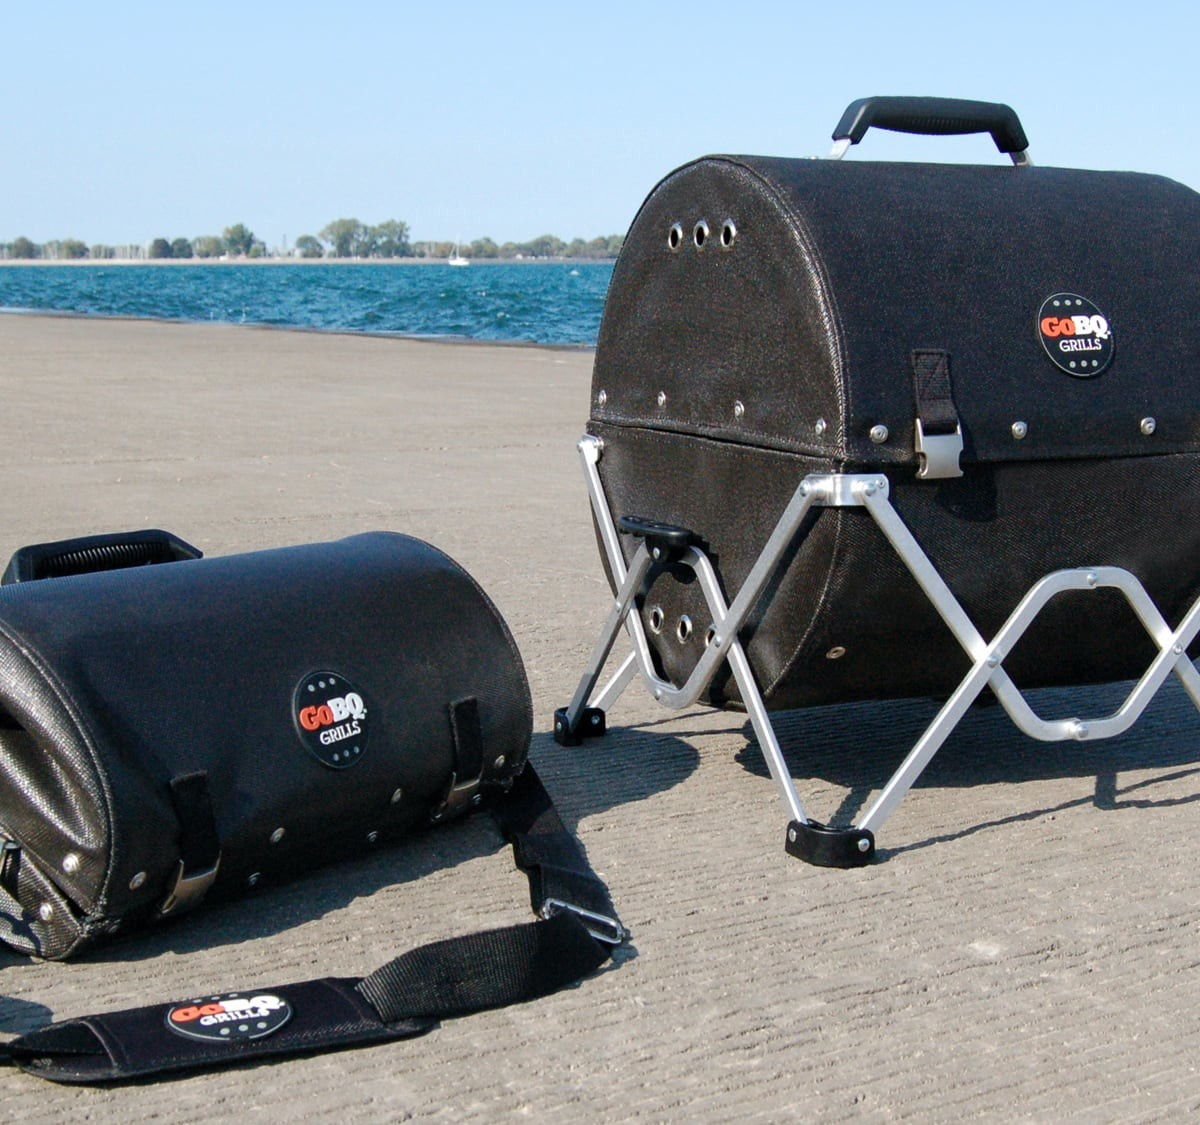 This GoBQ portable charcoal grill fits in your backpack